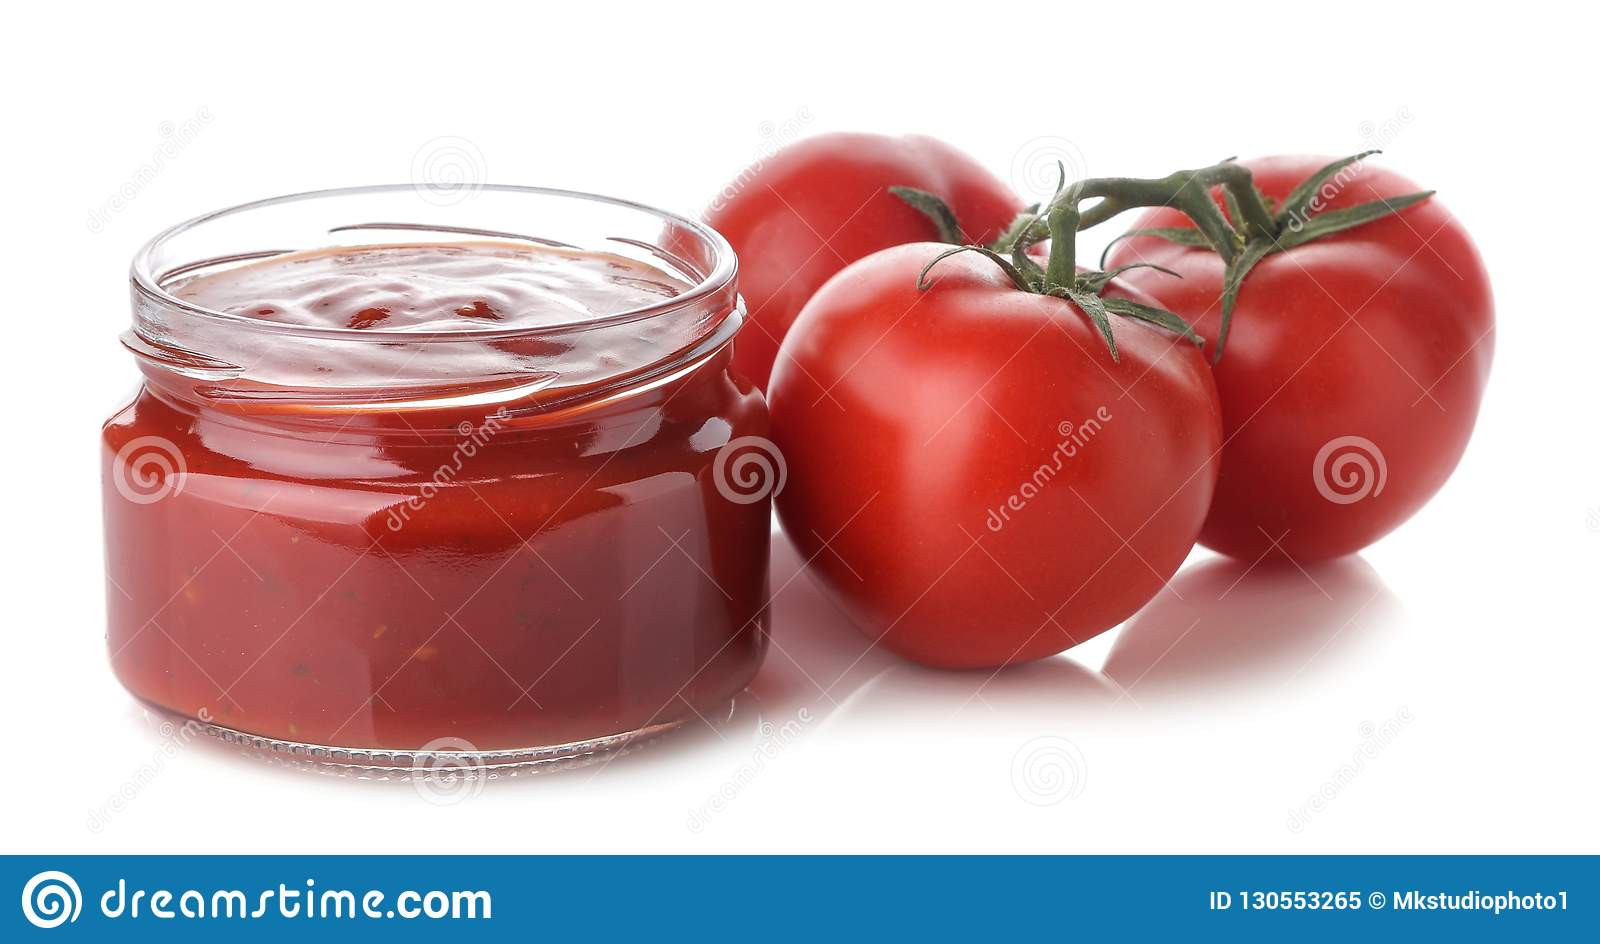 Red sauce in a jar and fresh ingredients, tomatoes on a white isolated background. Tomato sauce. Ketchup